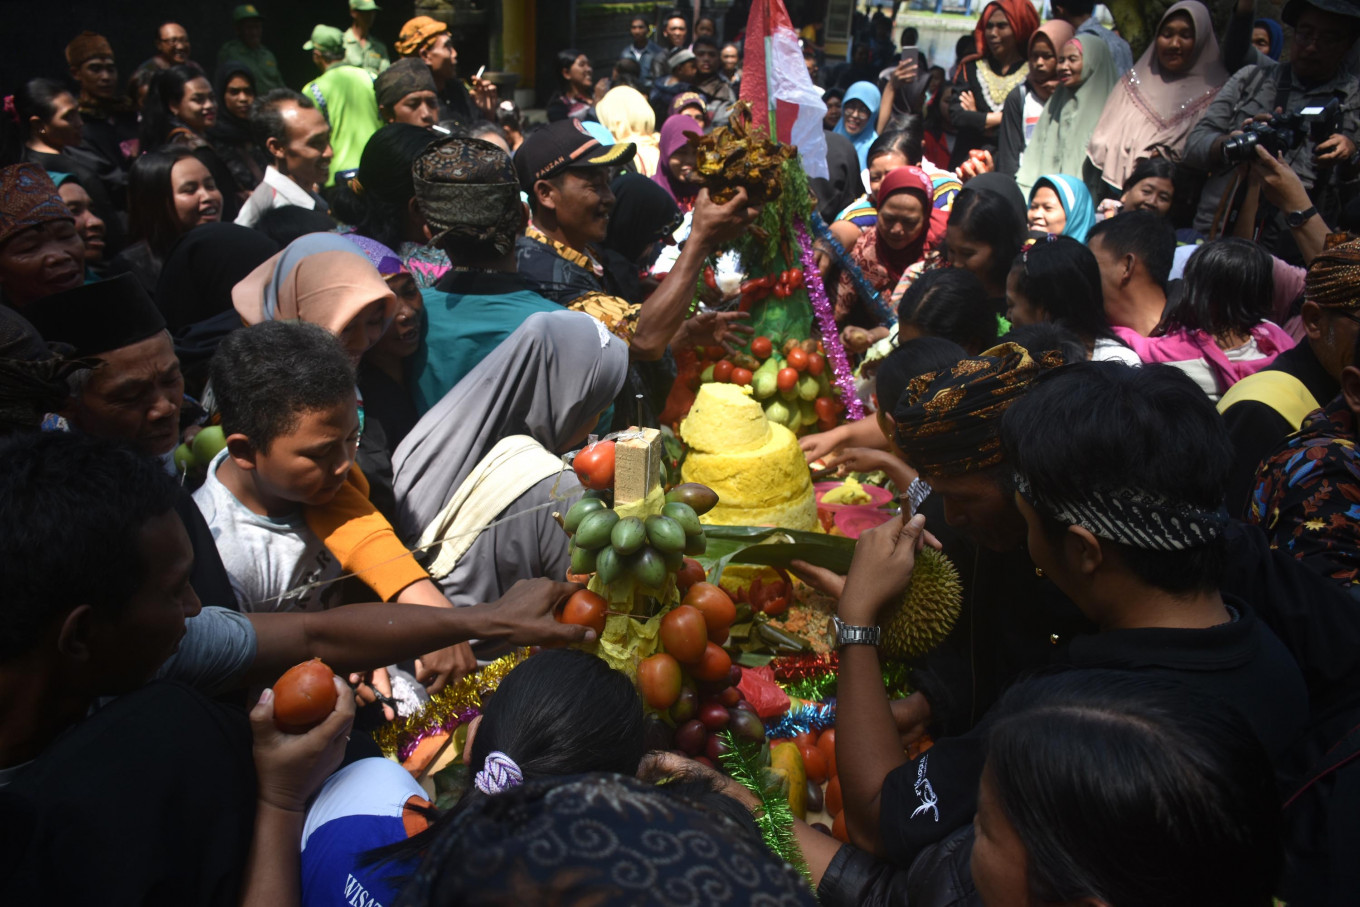 Visitors scramble to get some of the offerings to take home